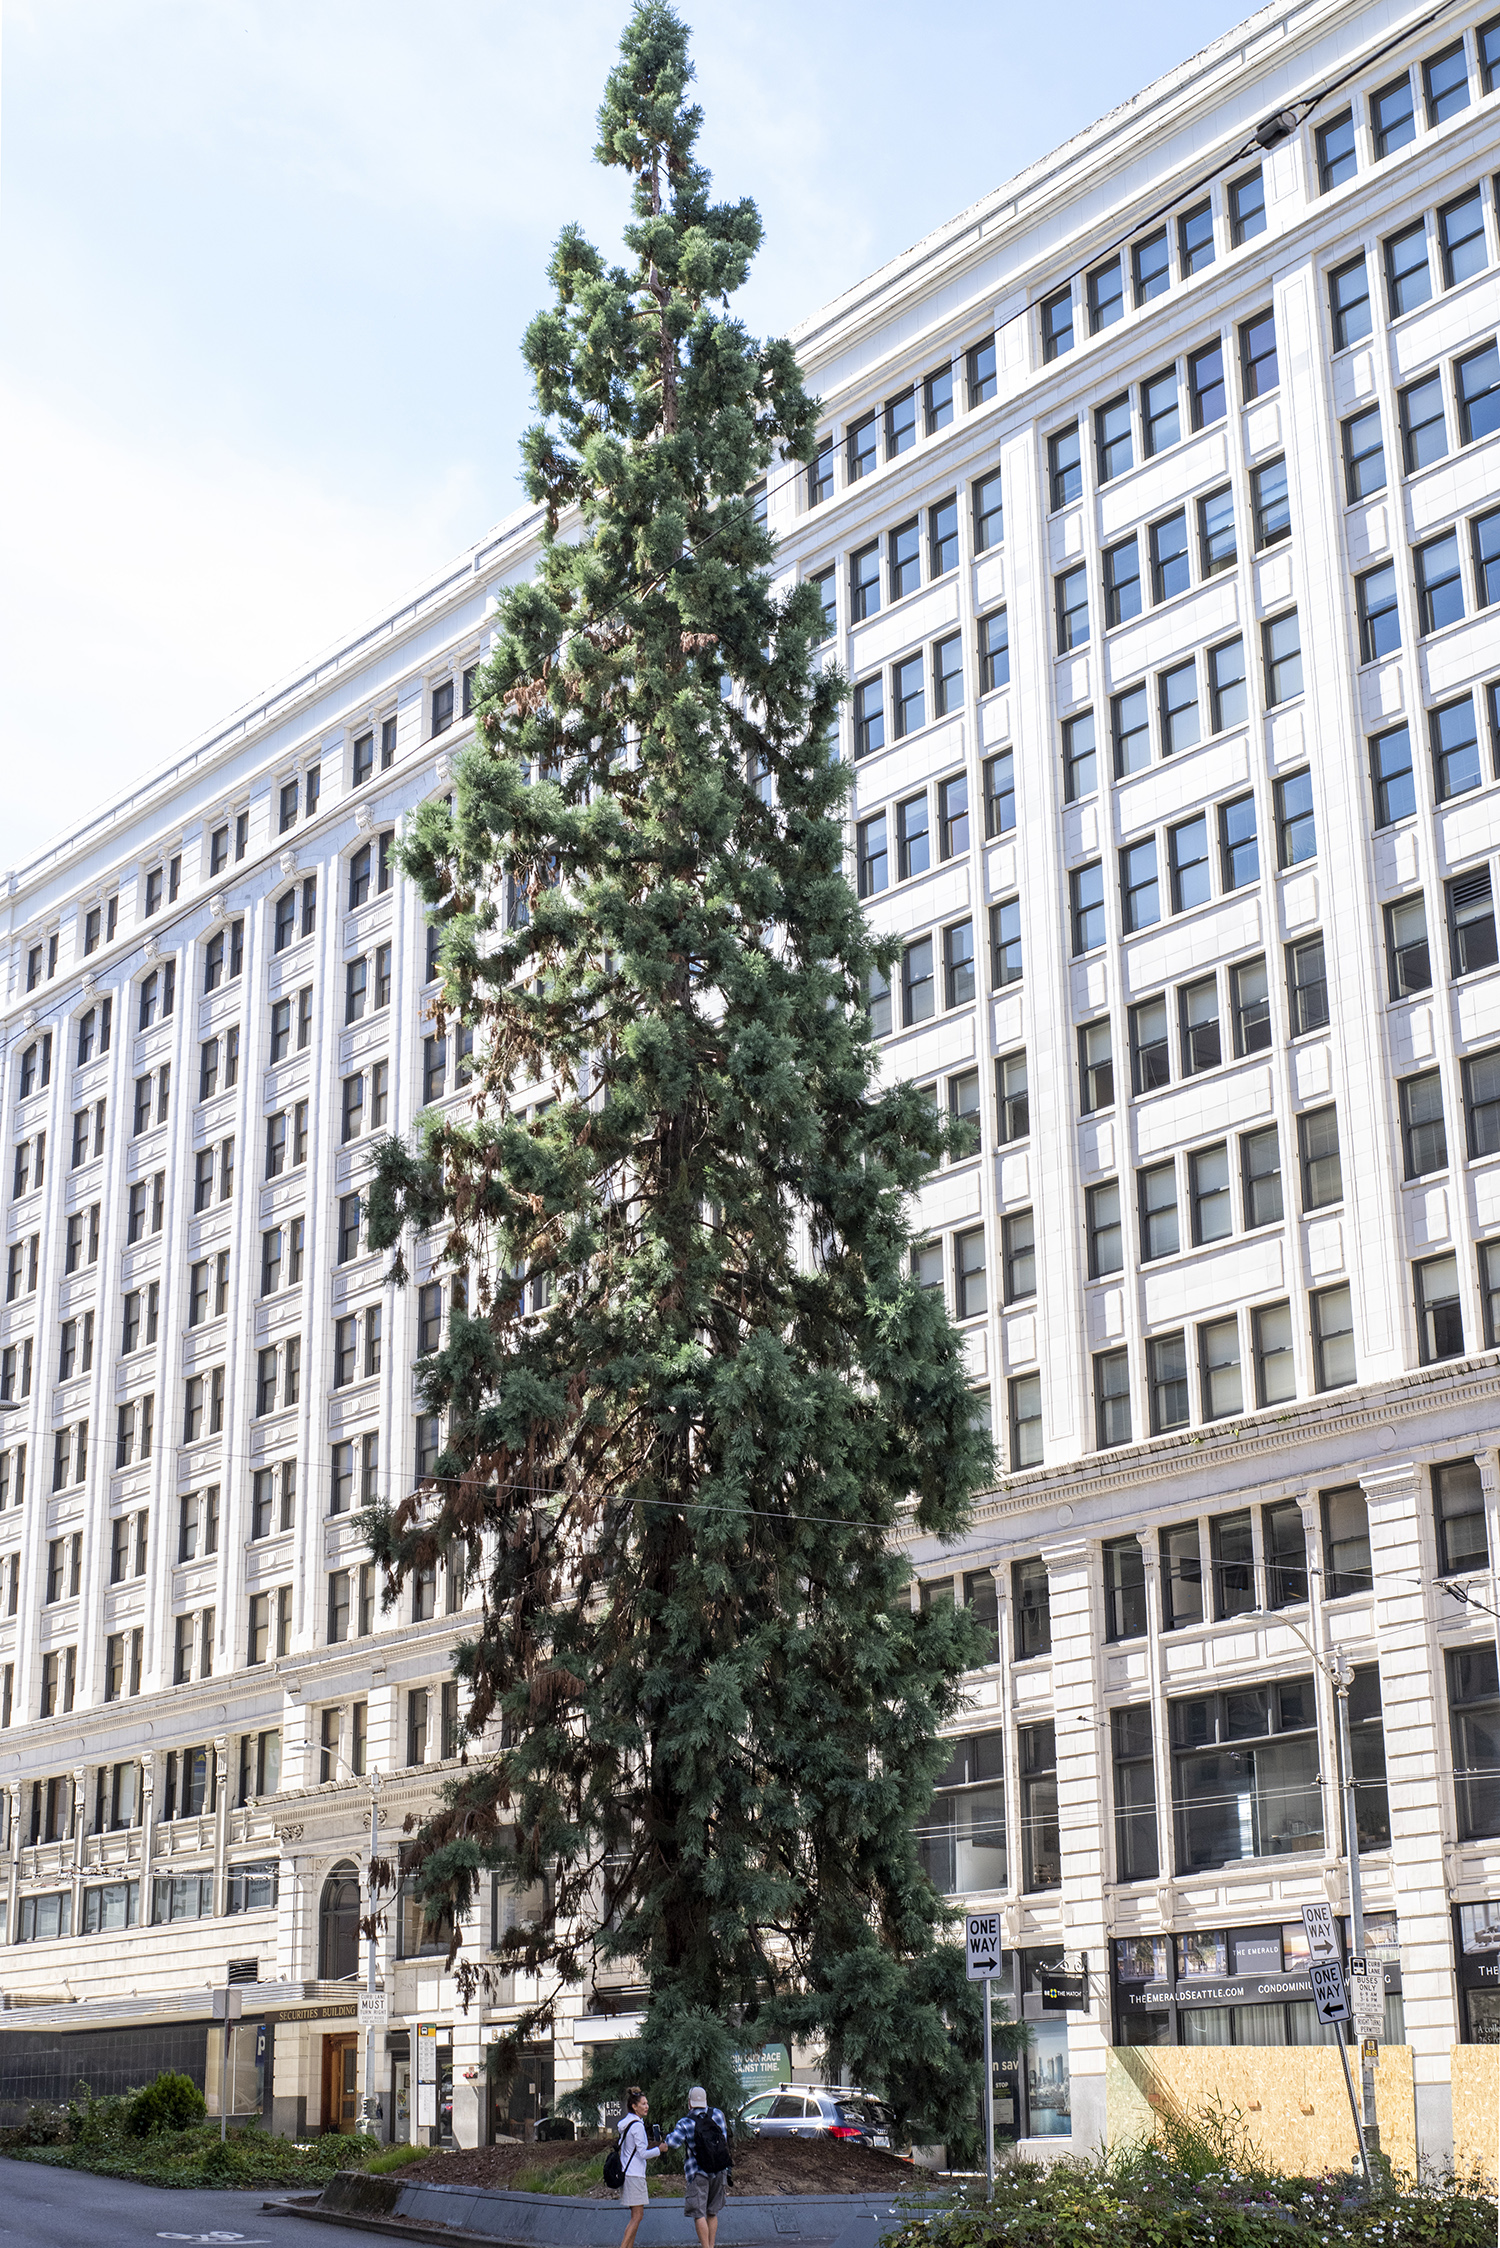 A giant Sequoia tree towers confidently between tech-biz skyscrapers in downtown Seattle. Still growing strong today, and properly maintained by city officials, the tree is decorated each holiday season with lights and a natural reminder of the city's past. (Image: Rachael Jones / Seattle Refined)